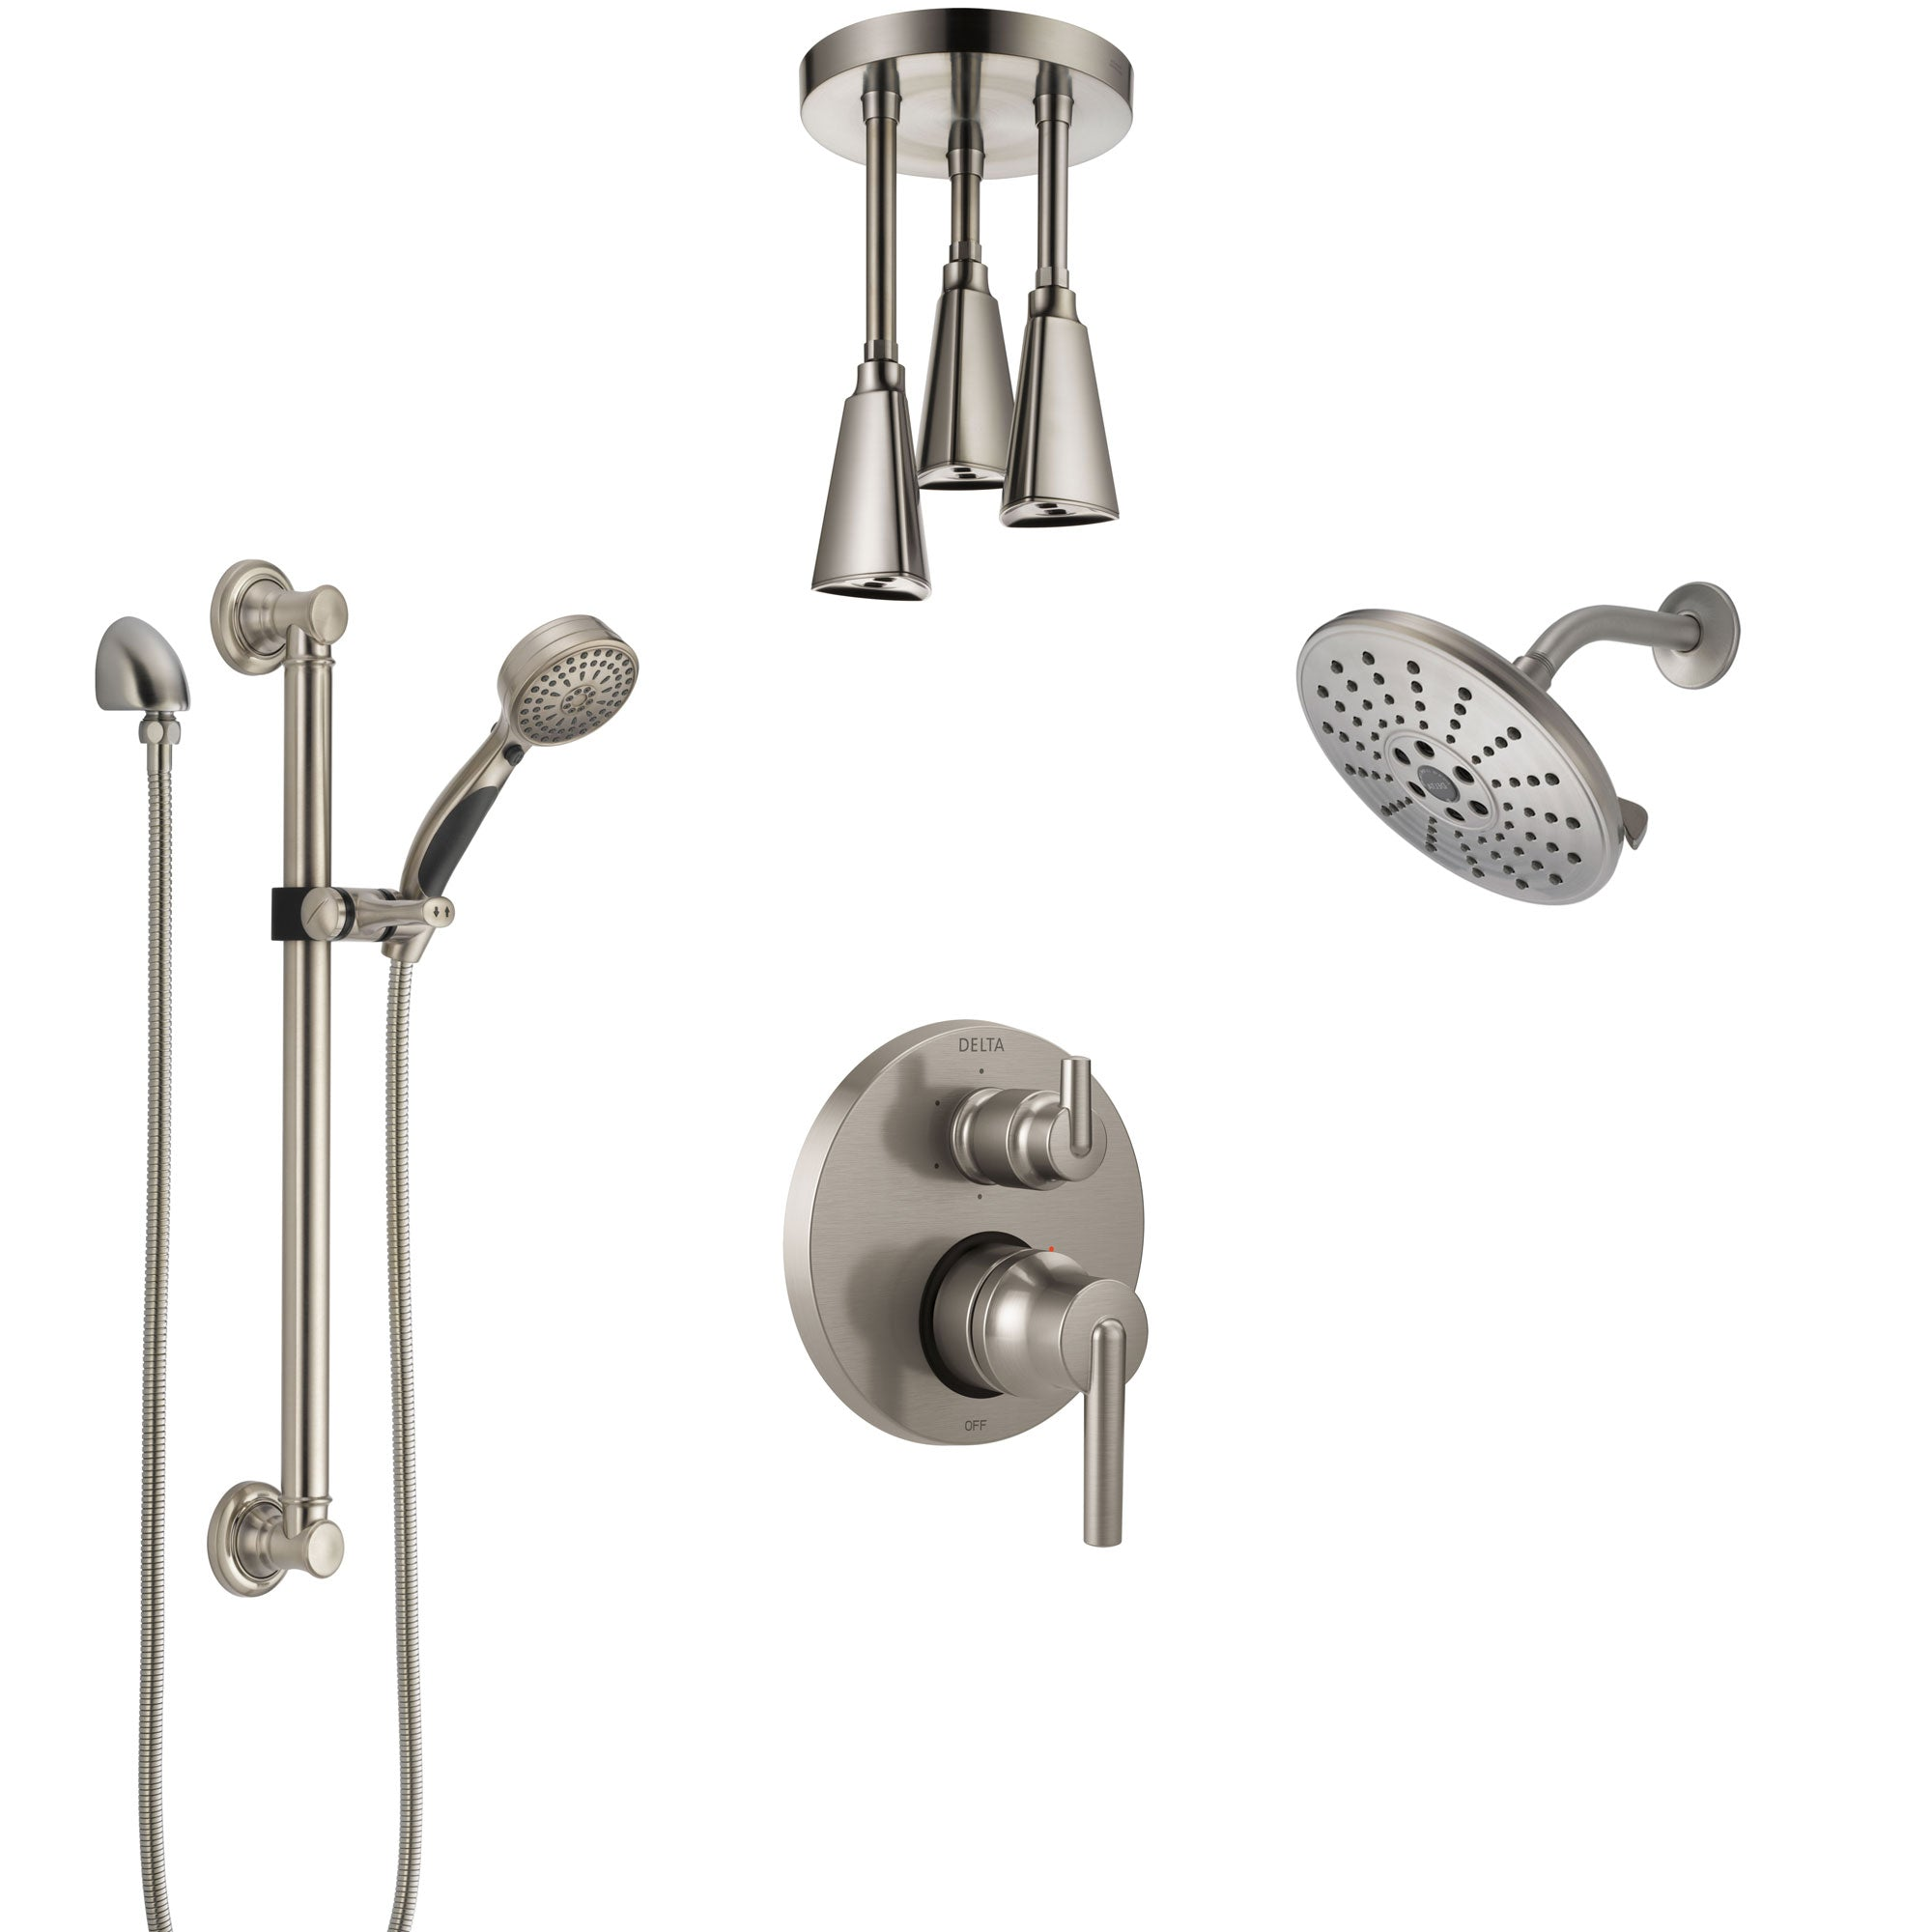 Delta Trinsic Stainless Steel Finish Integrated Diverter Shower System Control Handle, Showerhead, Ceiling Showerhead, Grab Bar Hand Spray SS24959SS2